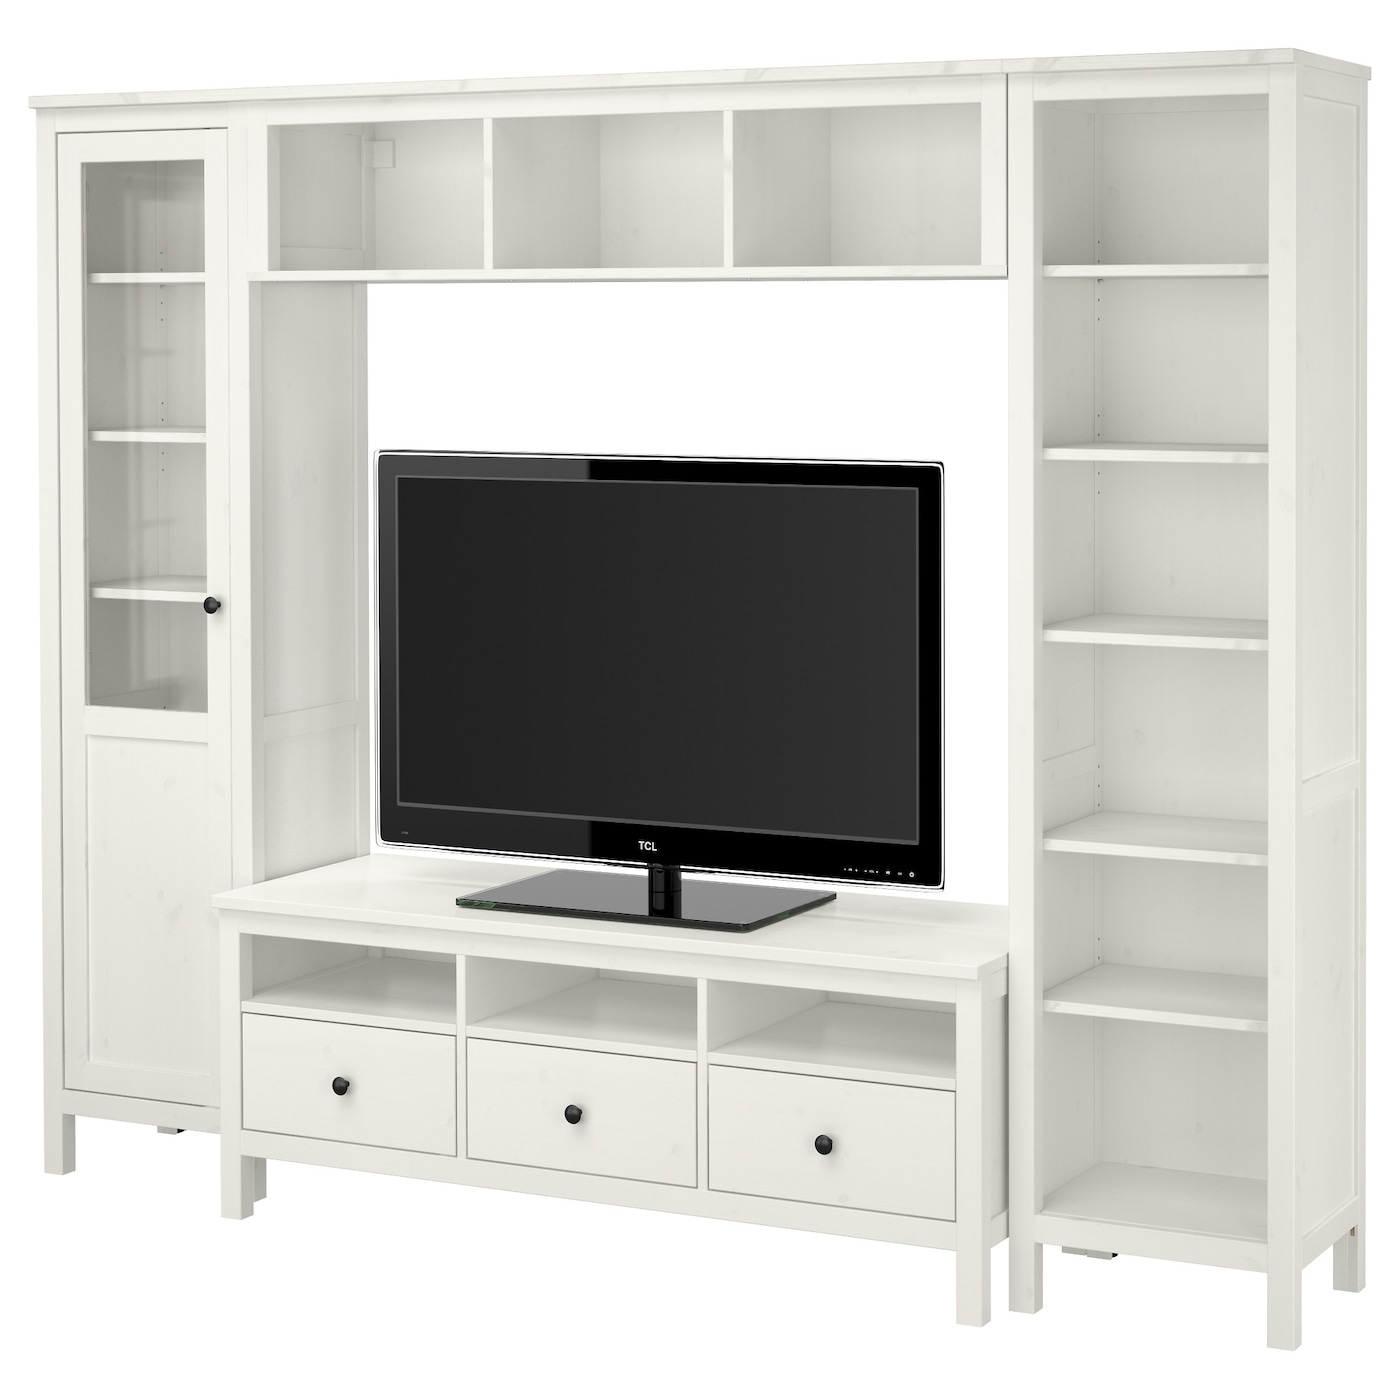 HEMNES TV storage bination White stain 246x197 cm IKEA